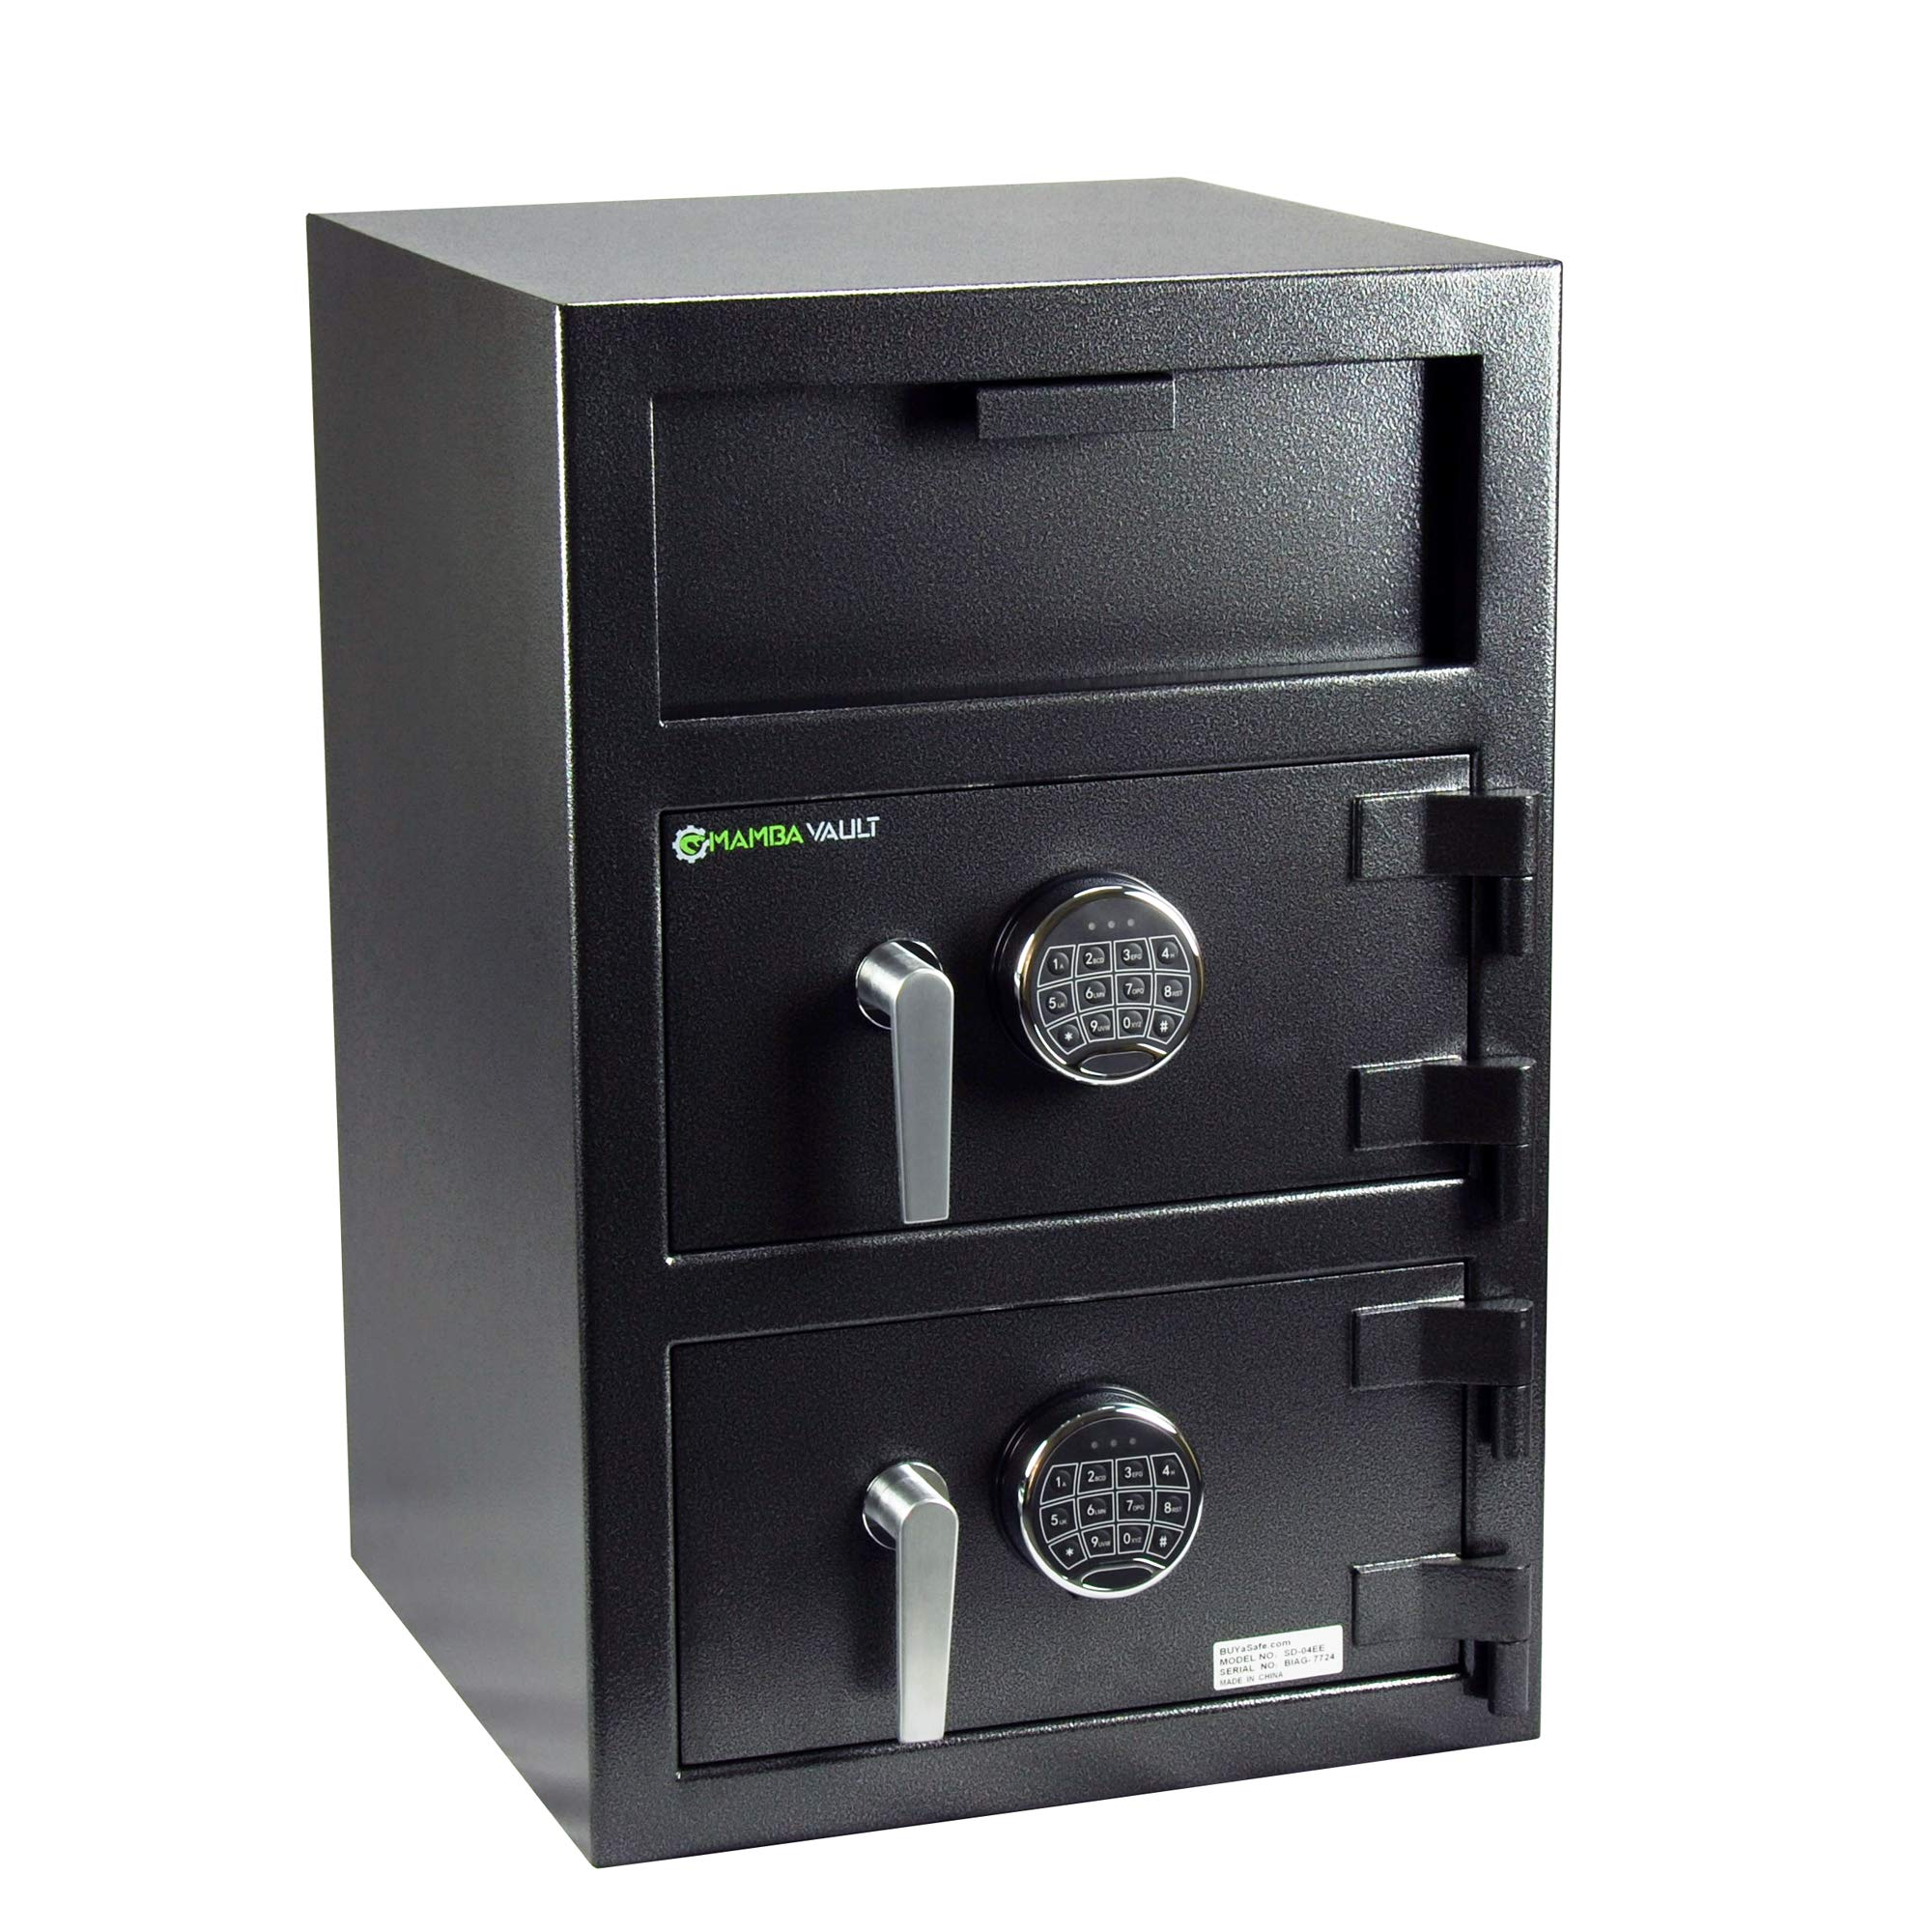 Depository Keypad Safe, Mamba Vault SD-04EE Deluxe Wide Body Dual-Door for Money Deposit, Front Loading Cash Drop with Electronic Digital Lock.